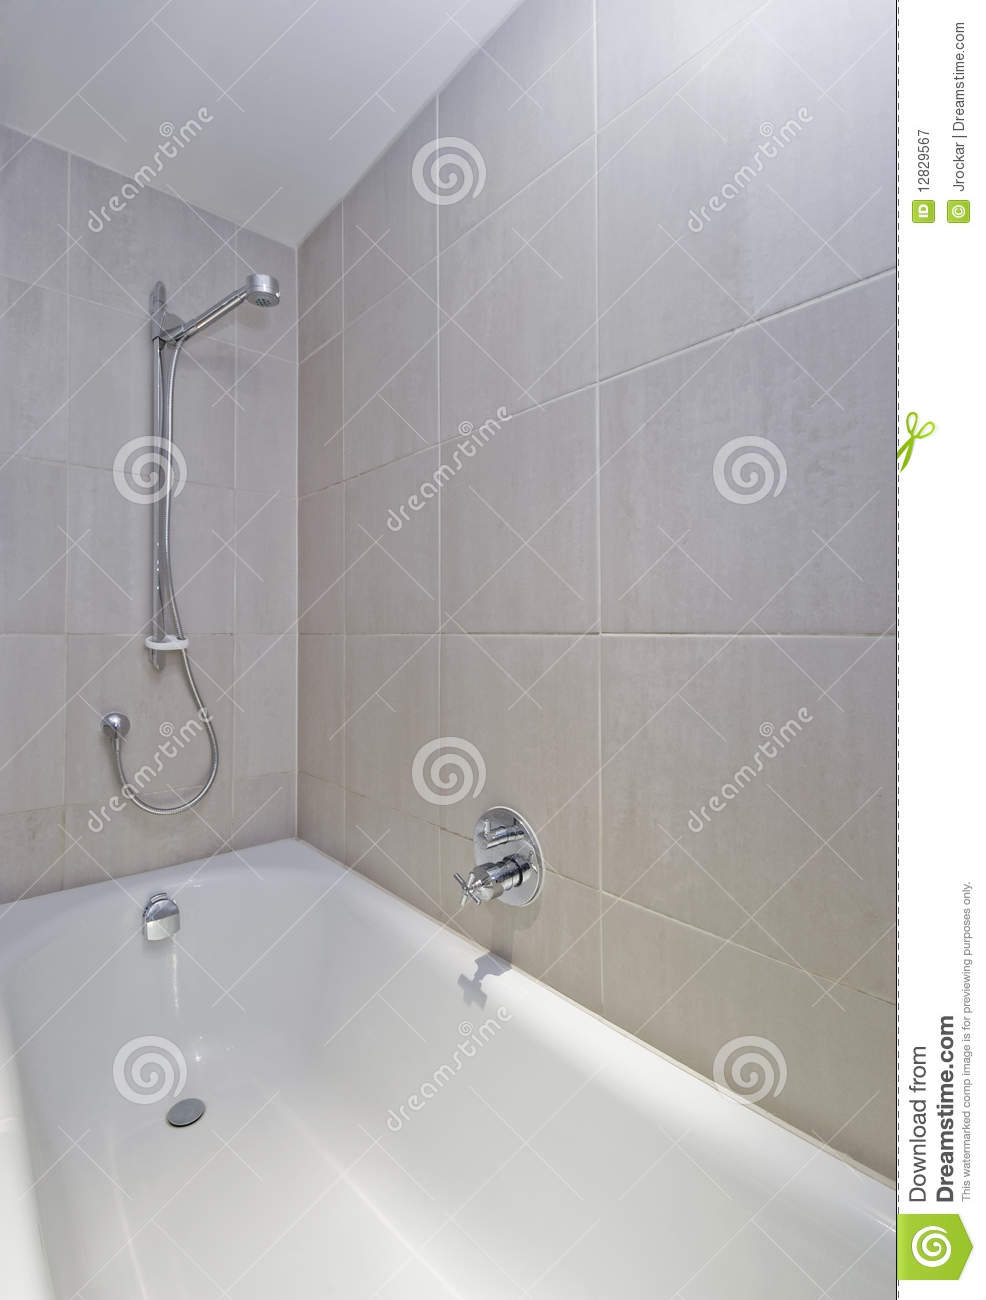 Baño De Tina O Artesa:Bath Tub with Shower Attachment